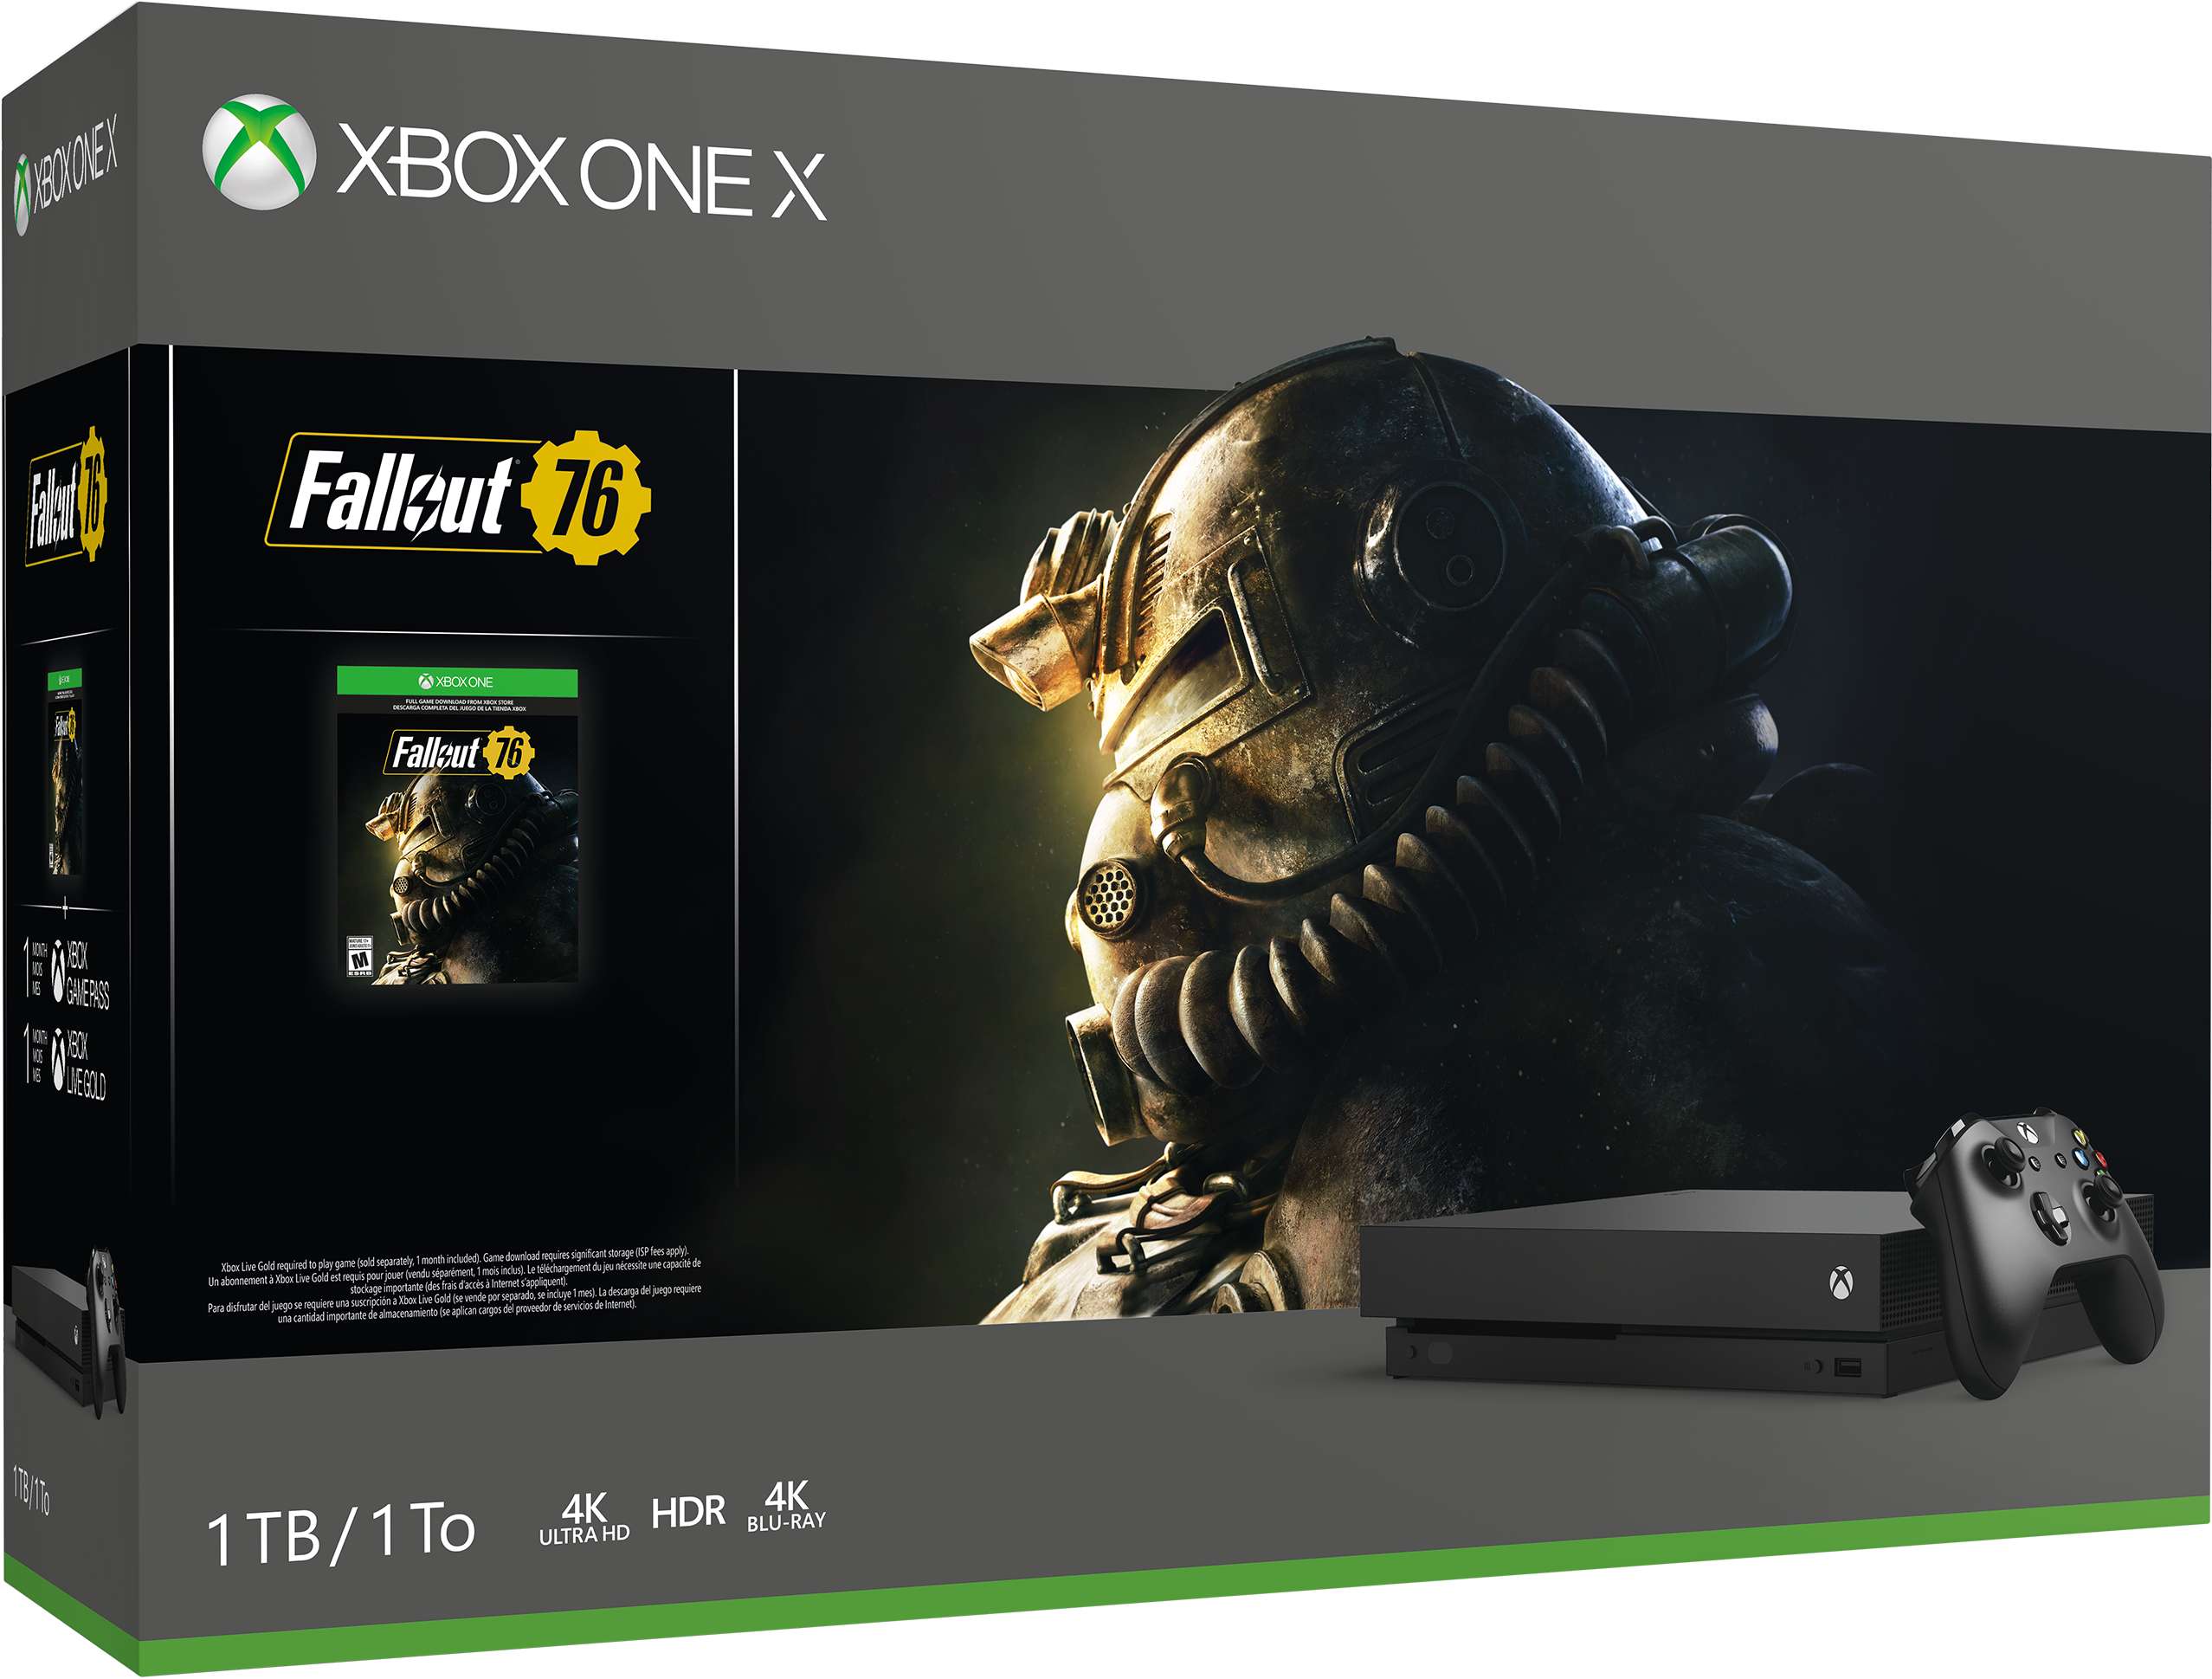 Xbox One X 1TB Console – Fallout 76 Bundle